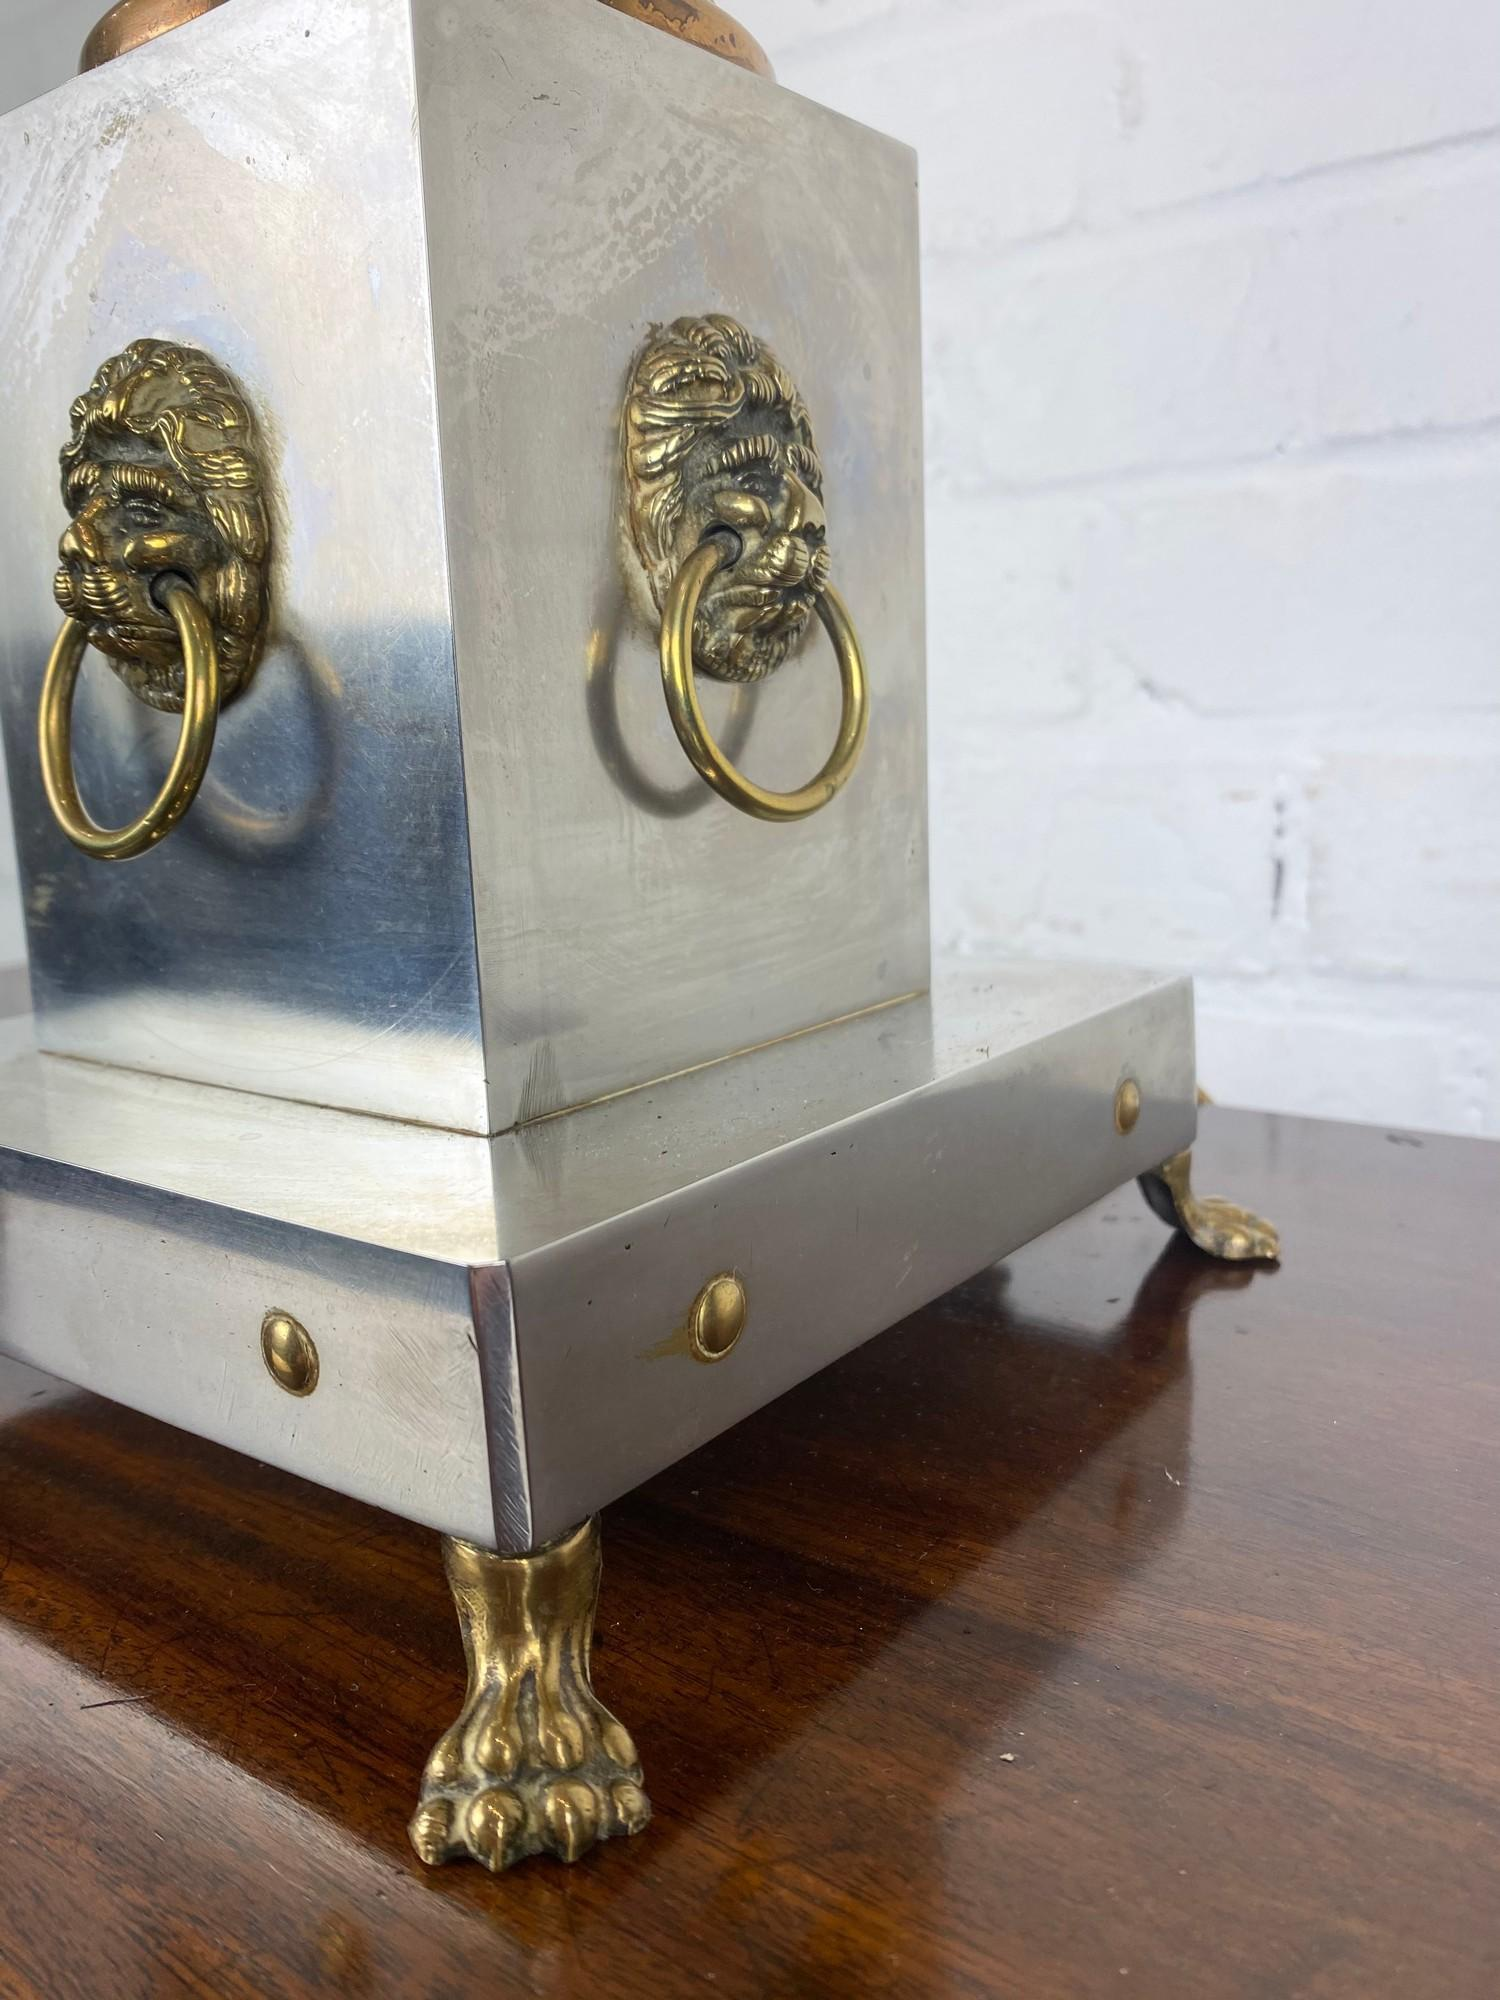 COLUMN HALL LAMP, early 20th century English silver plate, copper and brass four branch, with lion - Image 5 of 8